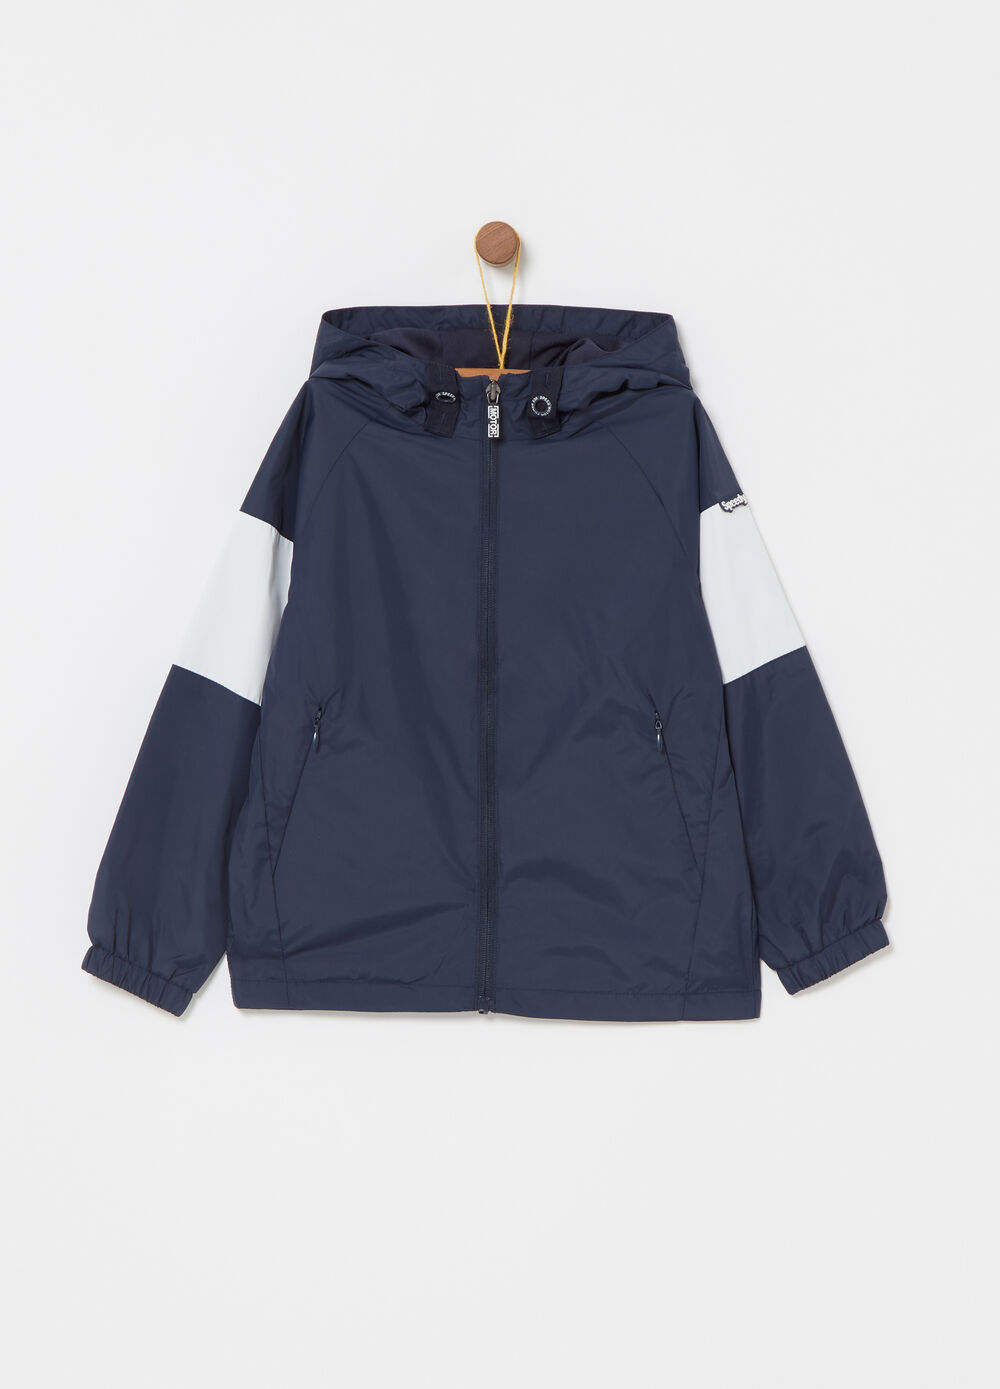 Windproof jacket with contrasting inserts